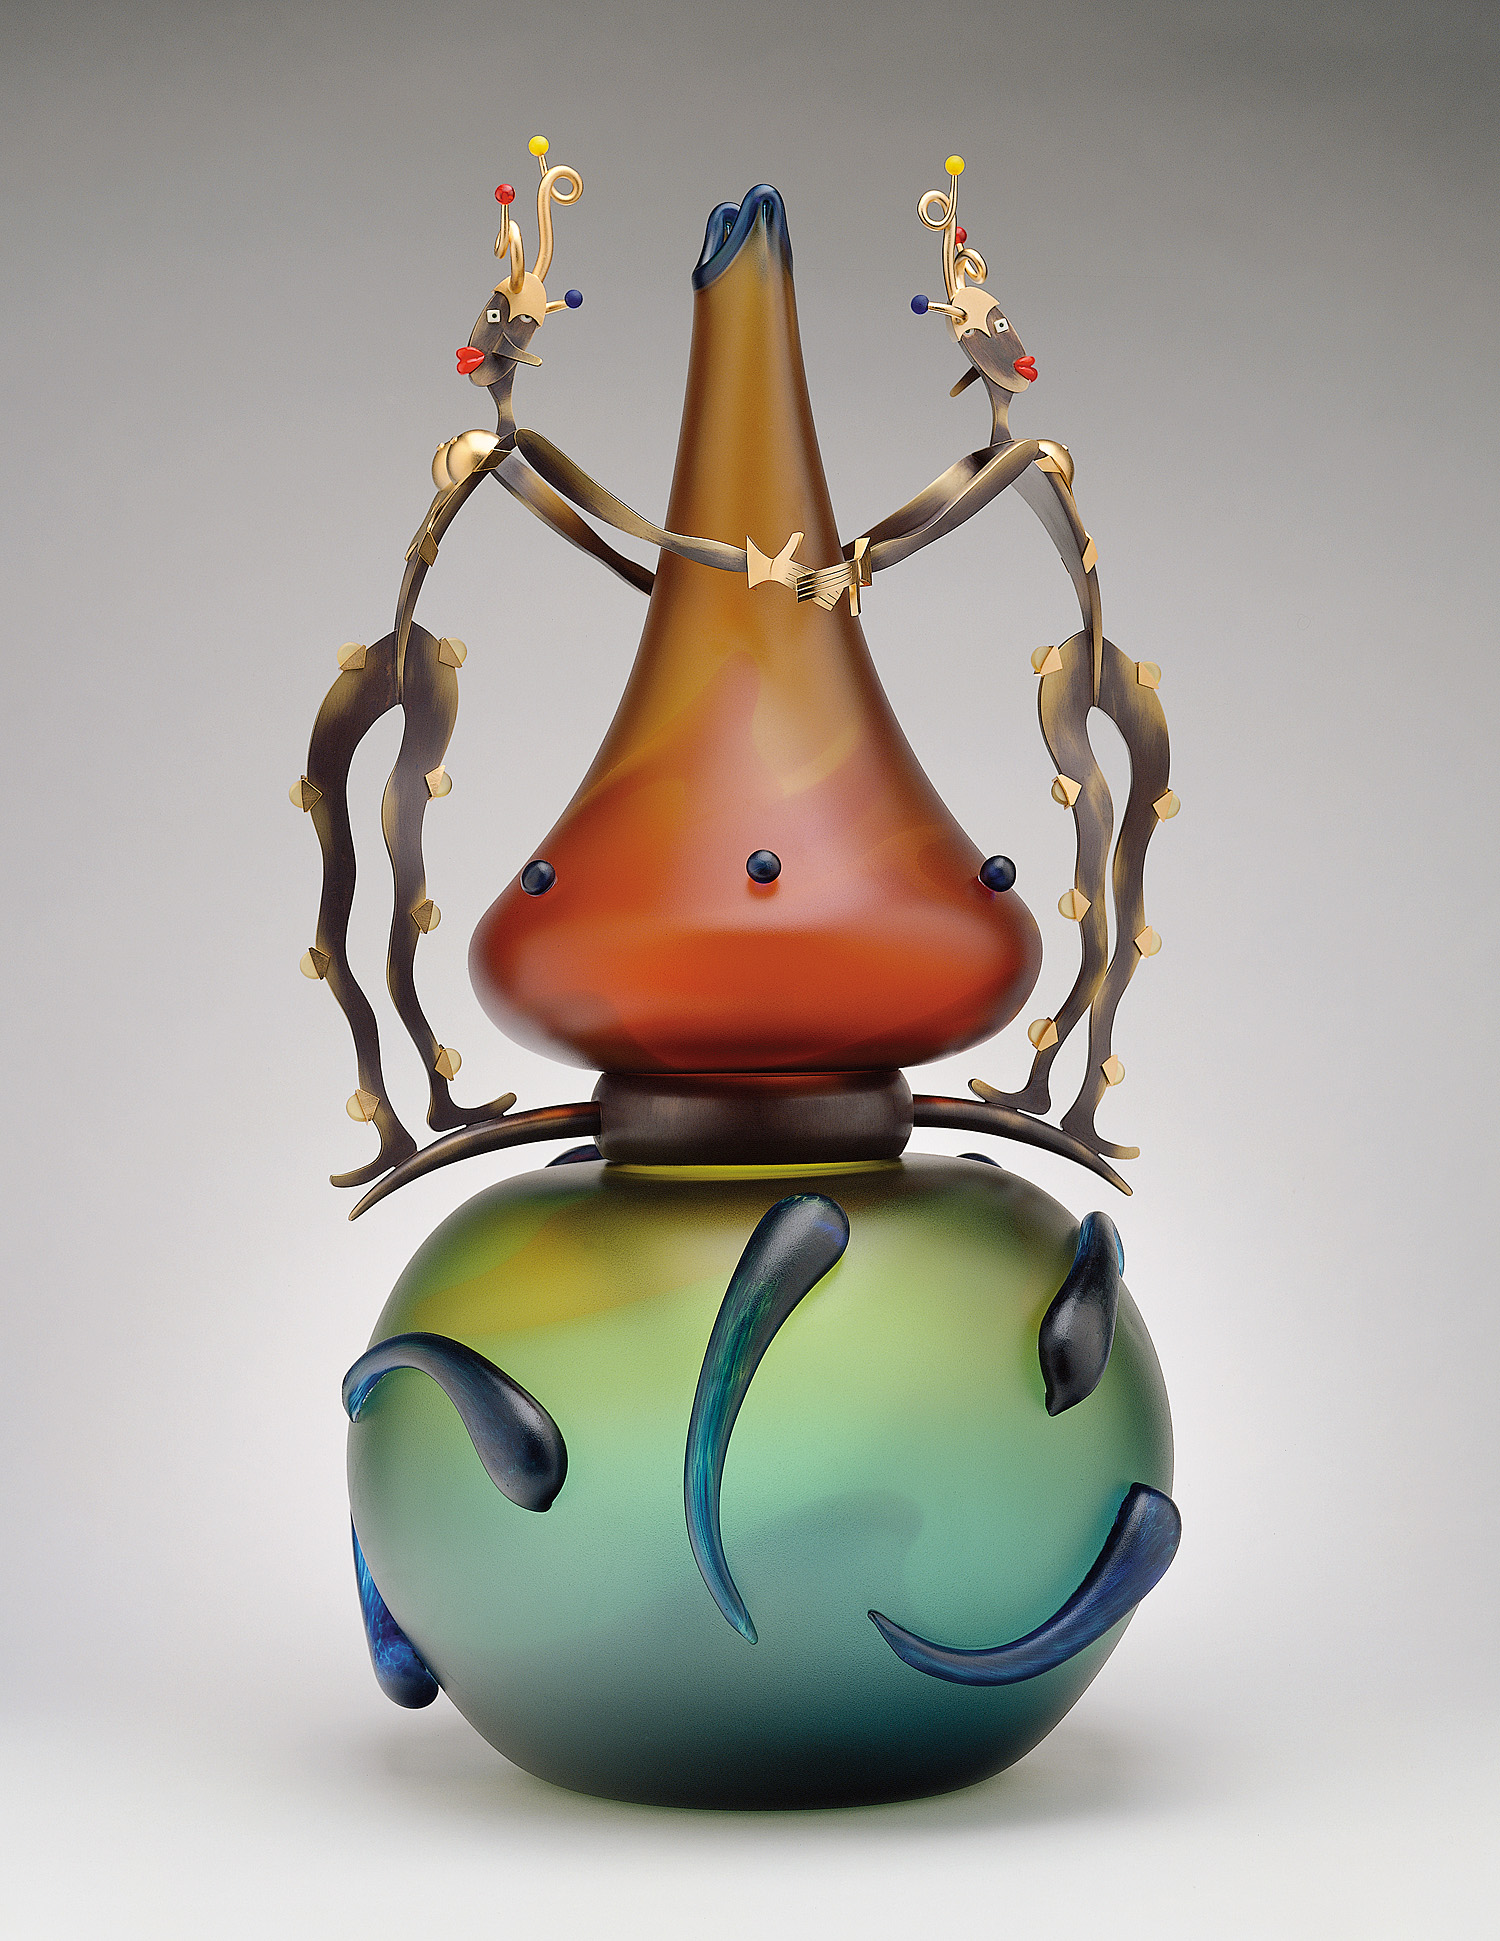 Art Heads   1999. Blown glass, bronze and gold-plated bronze, Vitrolite. 28 x 15 x 15""